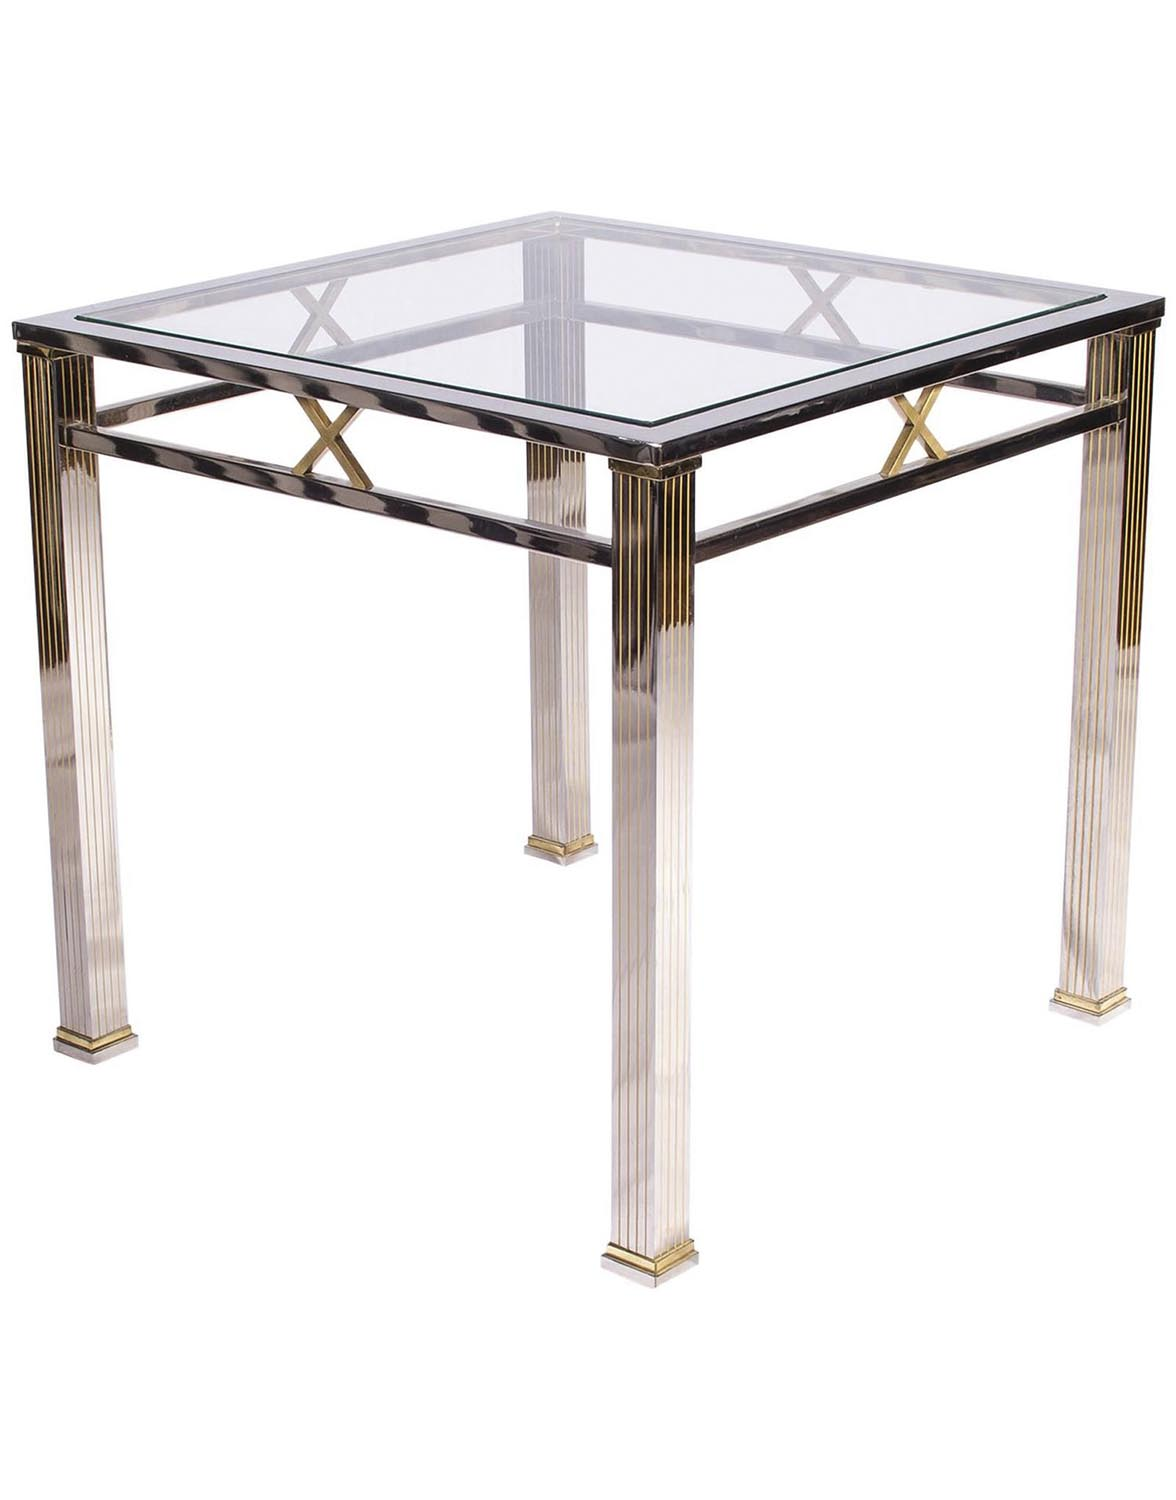 Chrome and Glass Coffee Table | Joevin Ortjens Galerie